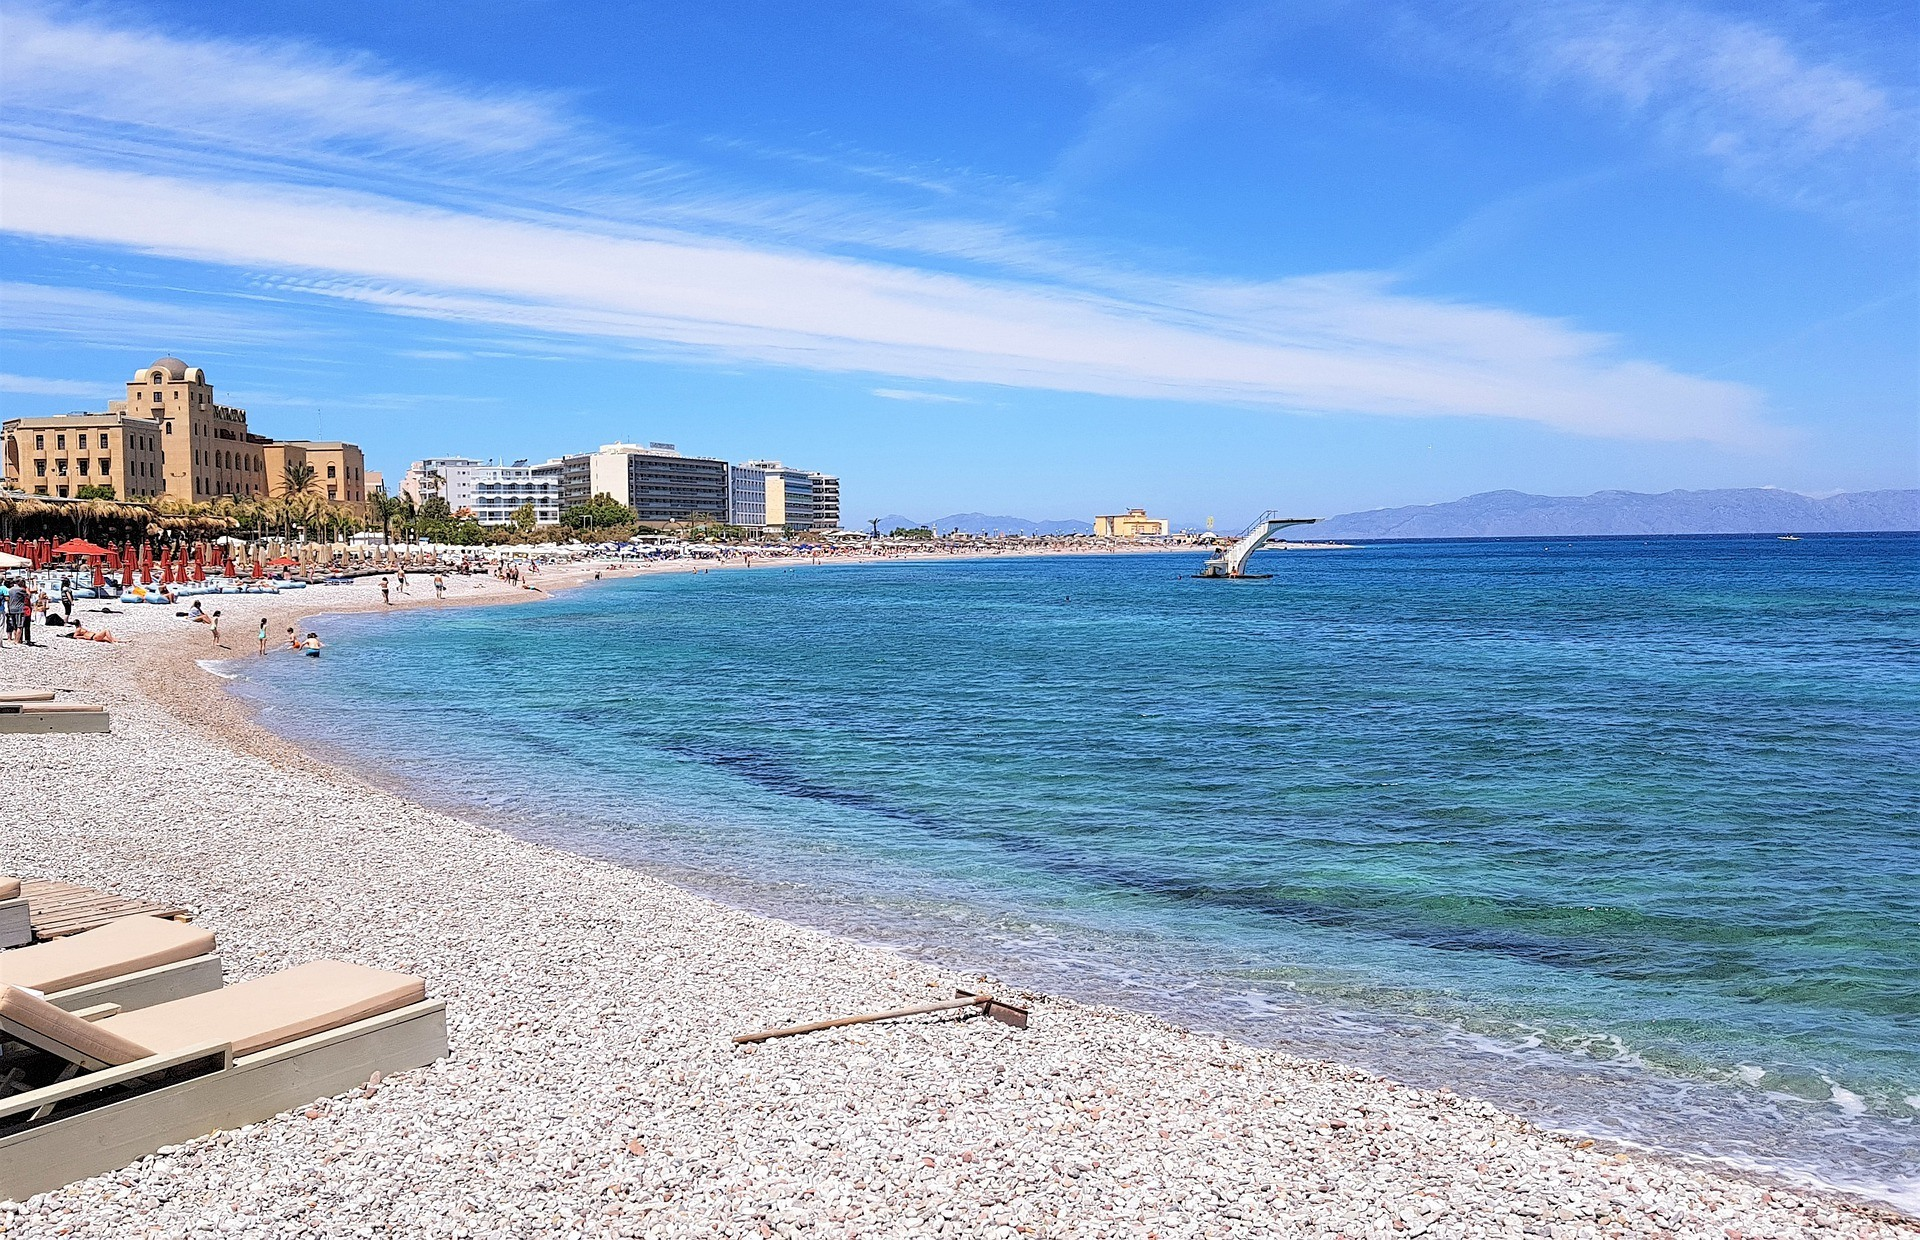 Ialyssos beach and resorts - best place to stay in Rhodes on a budget